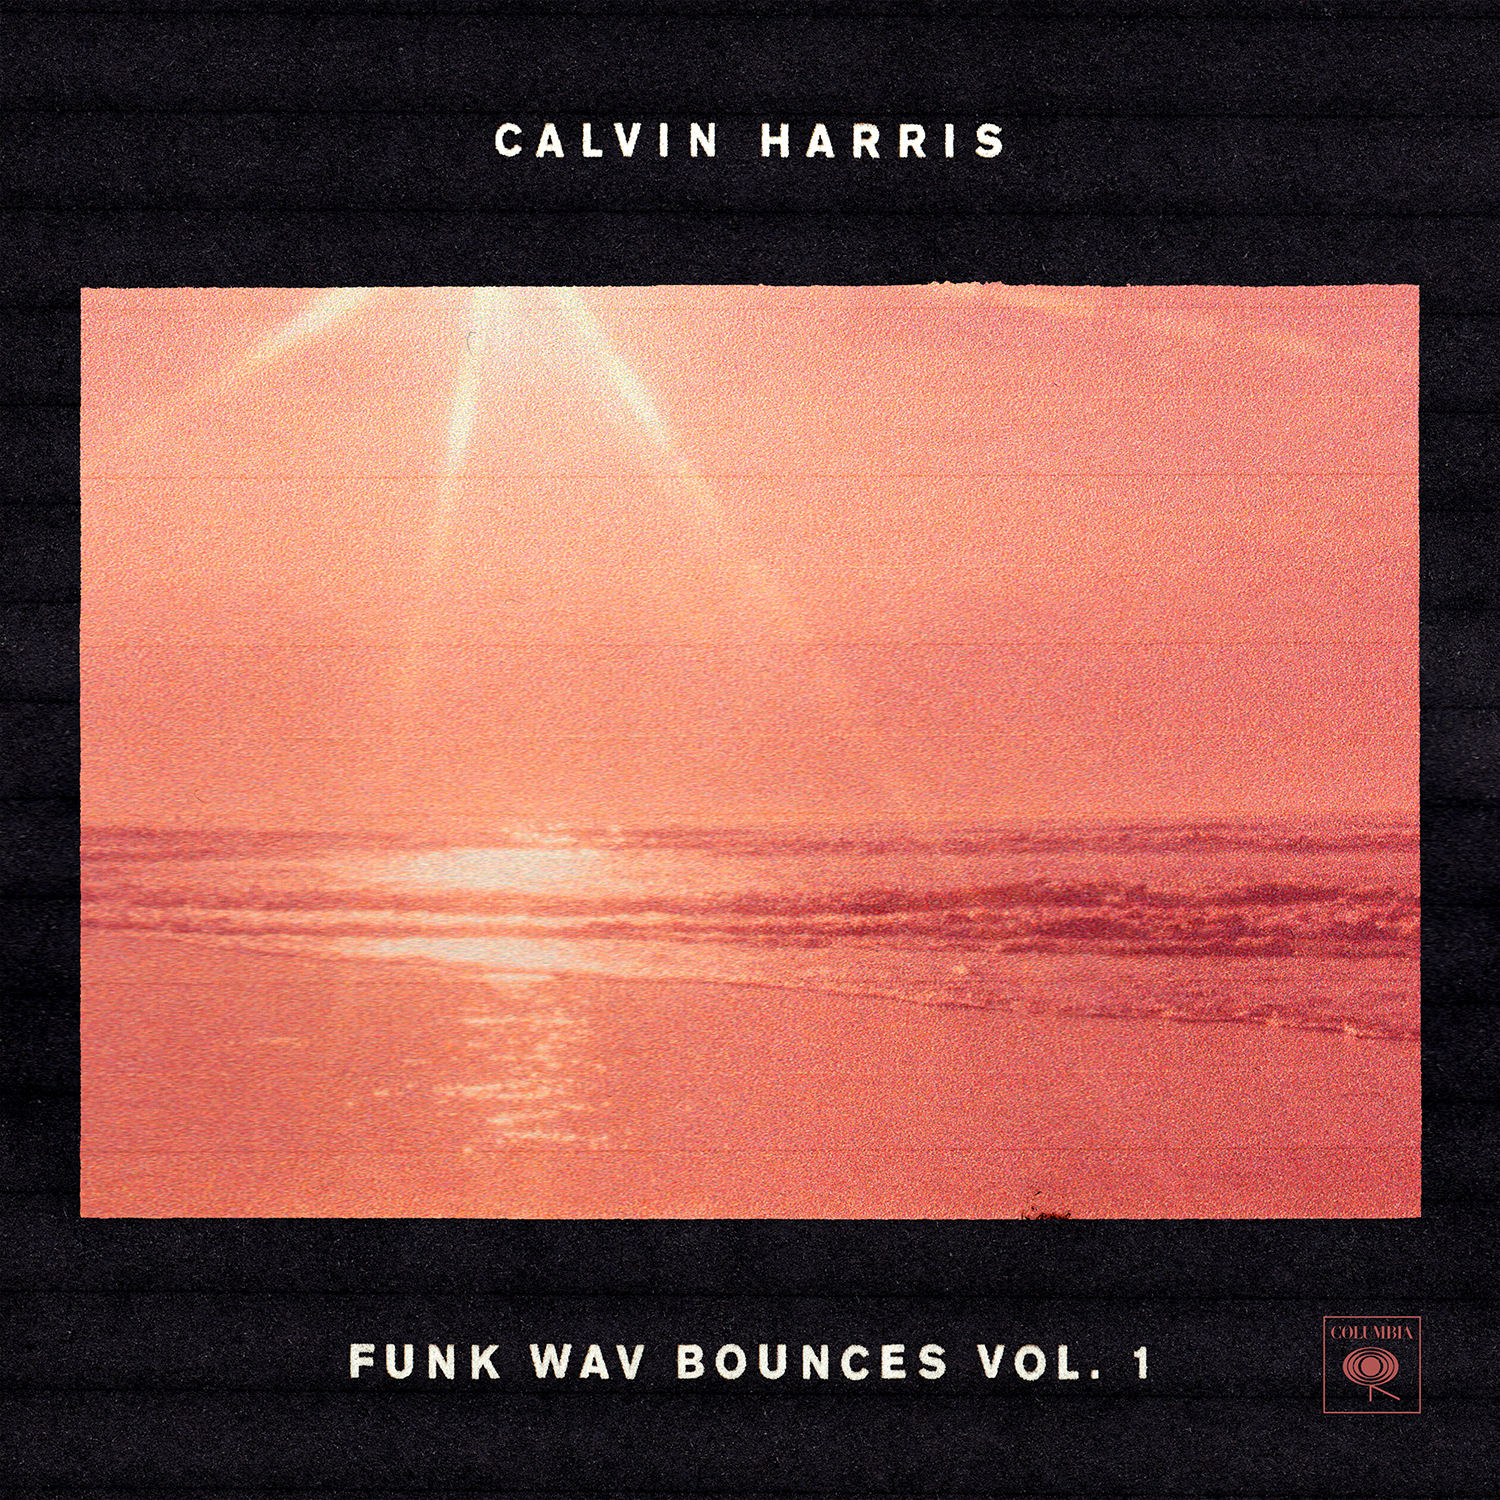 calvin-harris-funk-wav-bounces-vol1-1500x15001-137050013